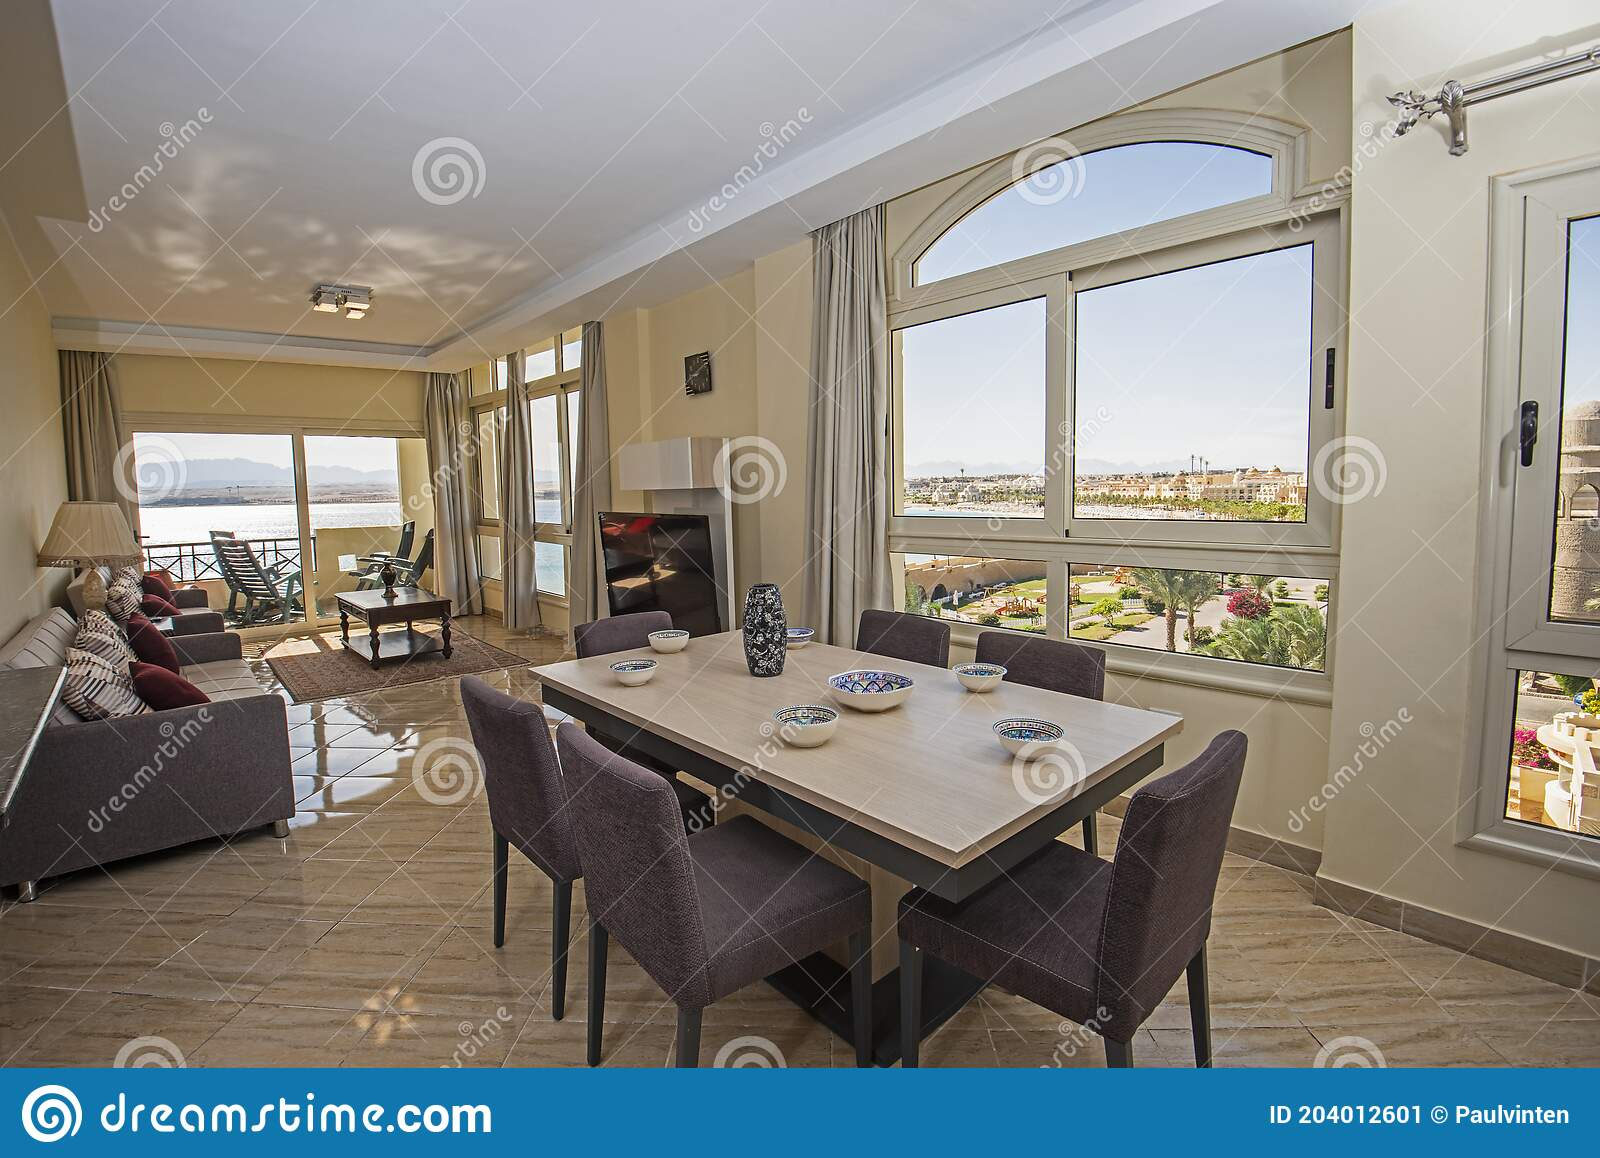 Interior Design Of Luxury Apartment Living Room With Balcony Stock Image Image Of Curtain Architecture 204012601